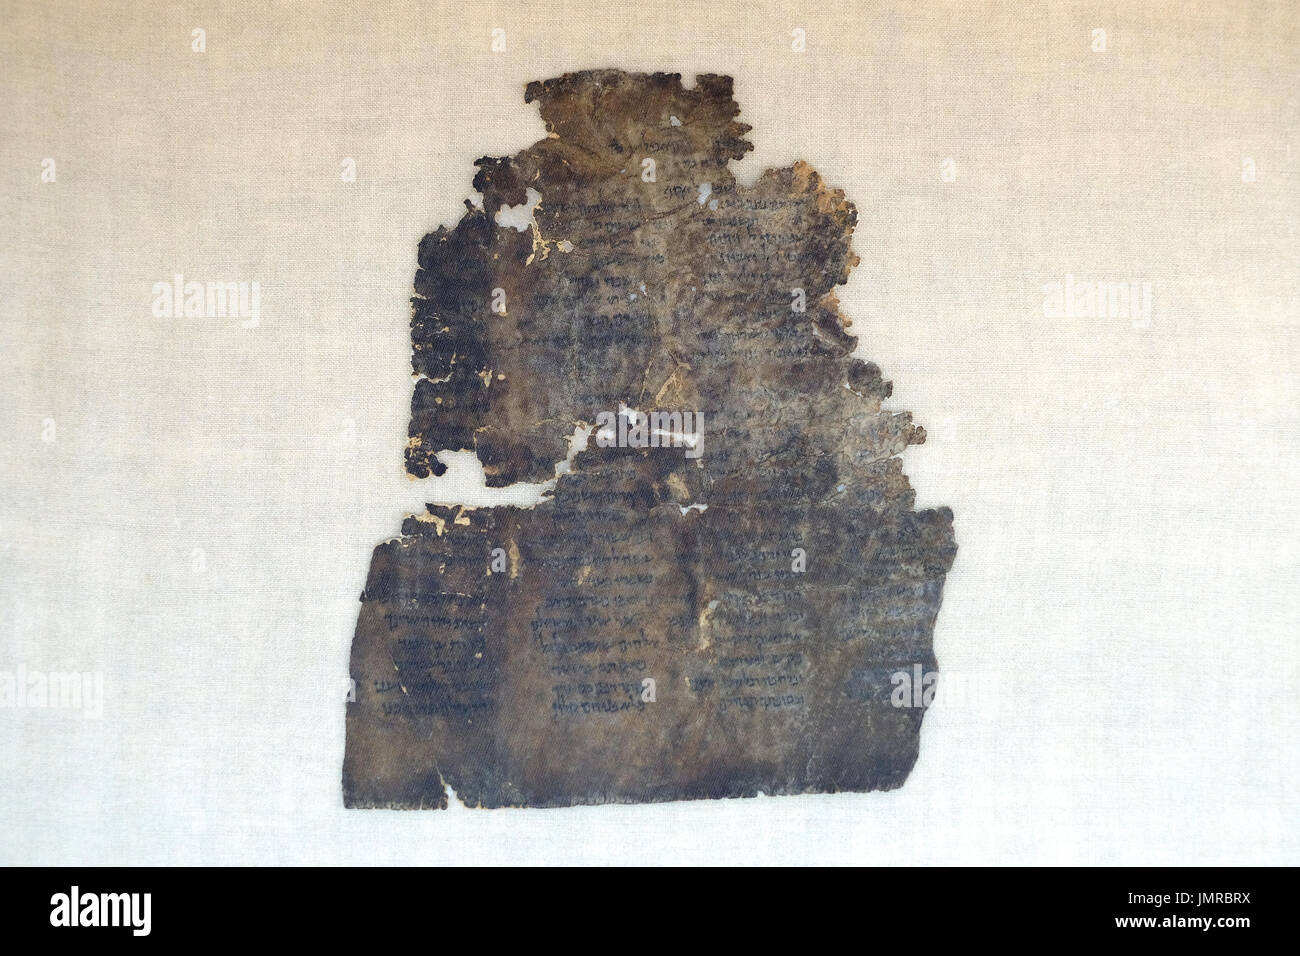 A fragment of Dead Sea Psalms scroll written in Hebrew found in Qumran caves in the preservation laboratory of the Stock Photo